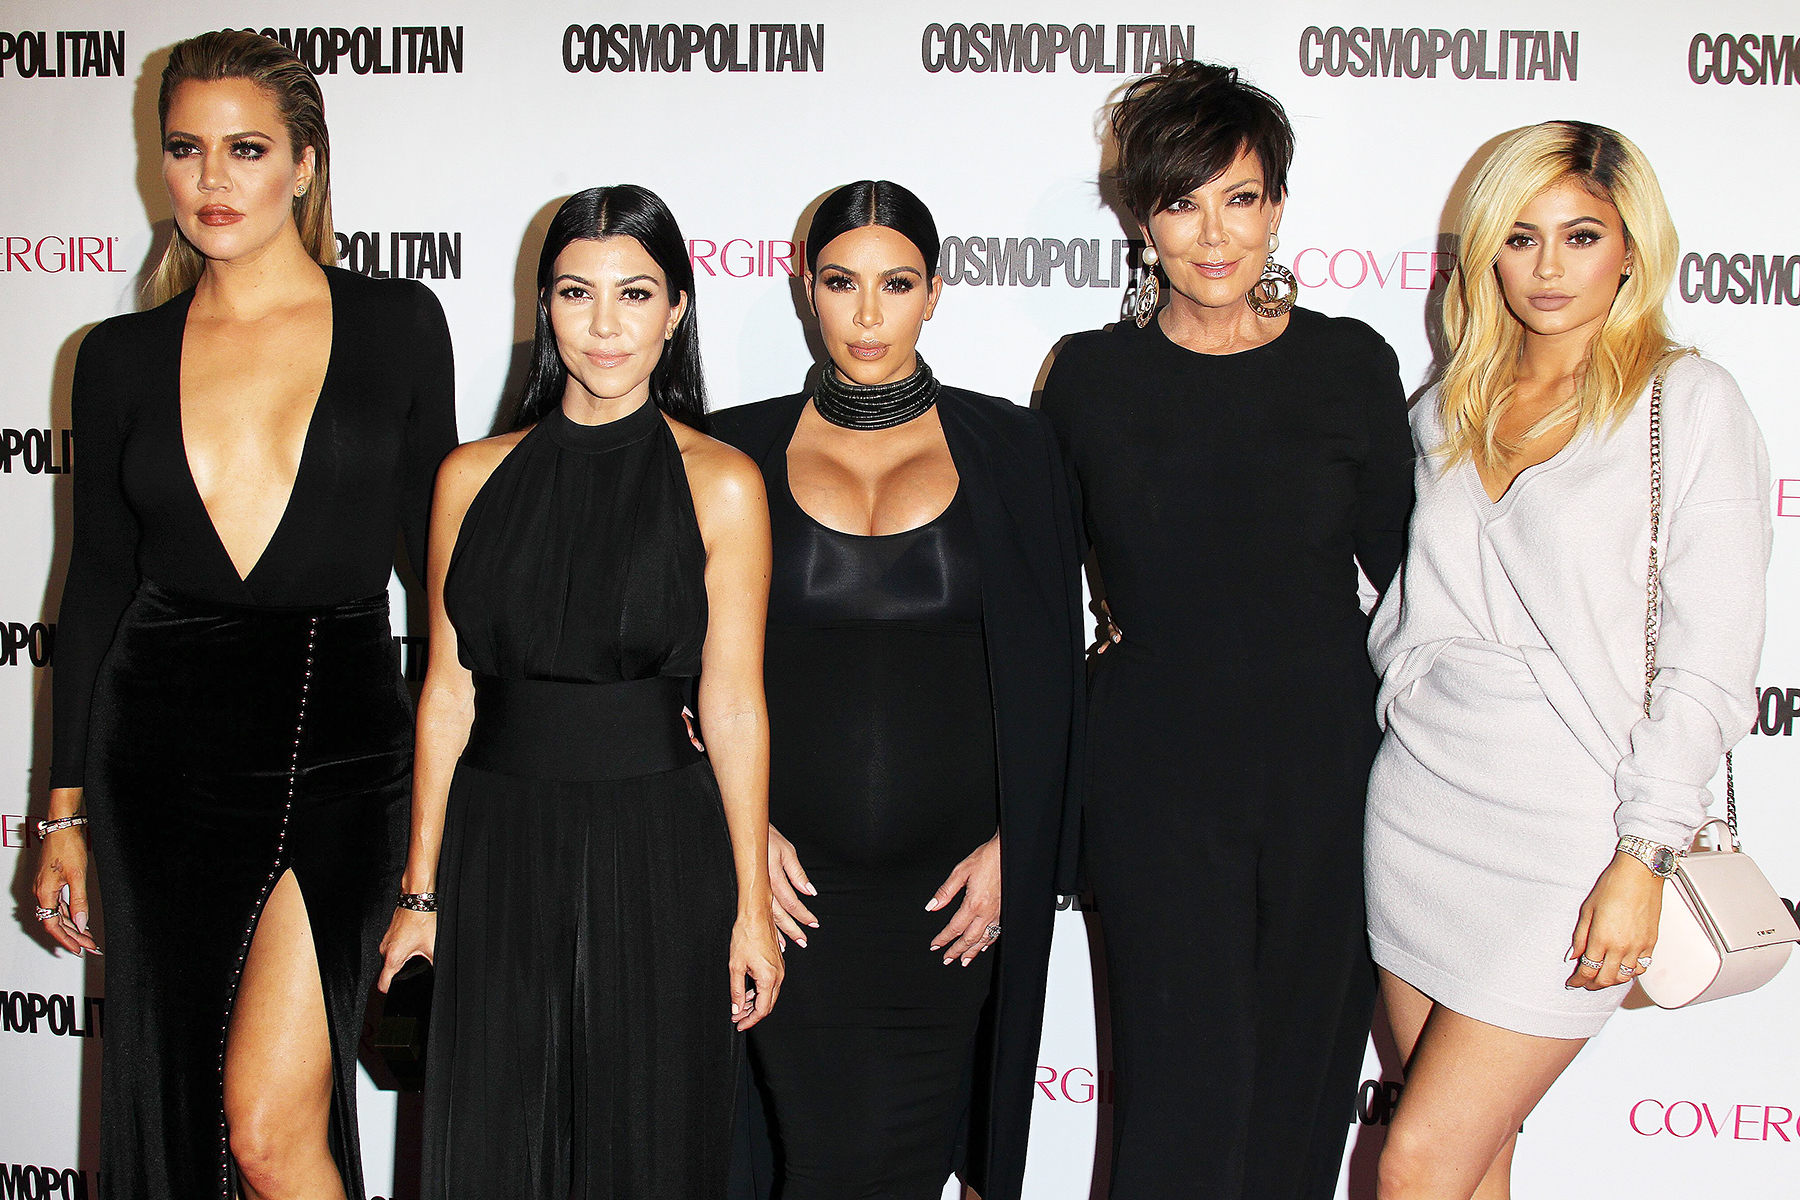 Kris Jenner with daughters Khoe, Kourtney, Kim, and Kylie, at an event in October 2015